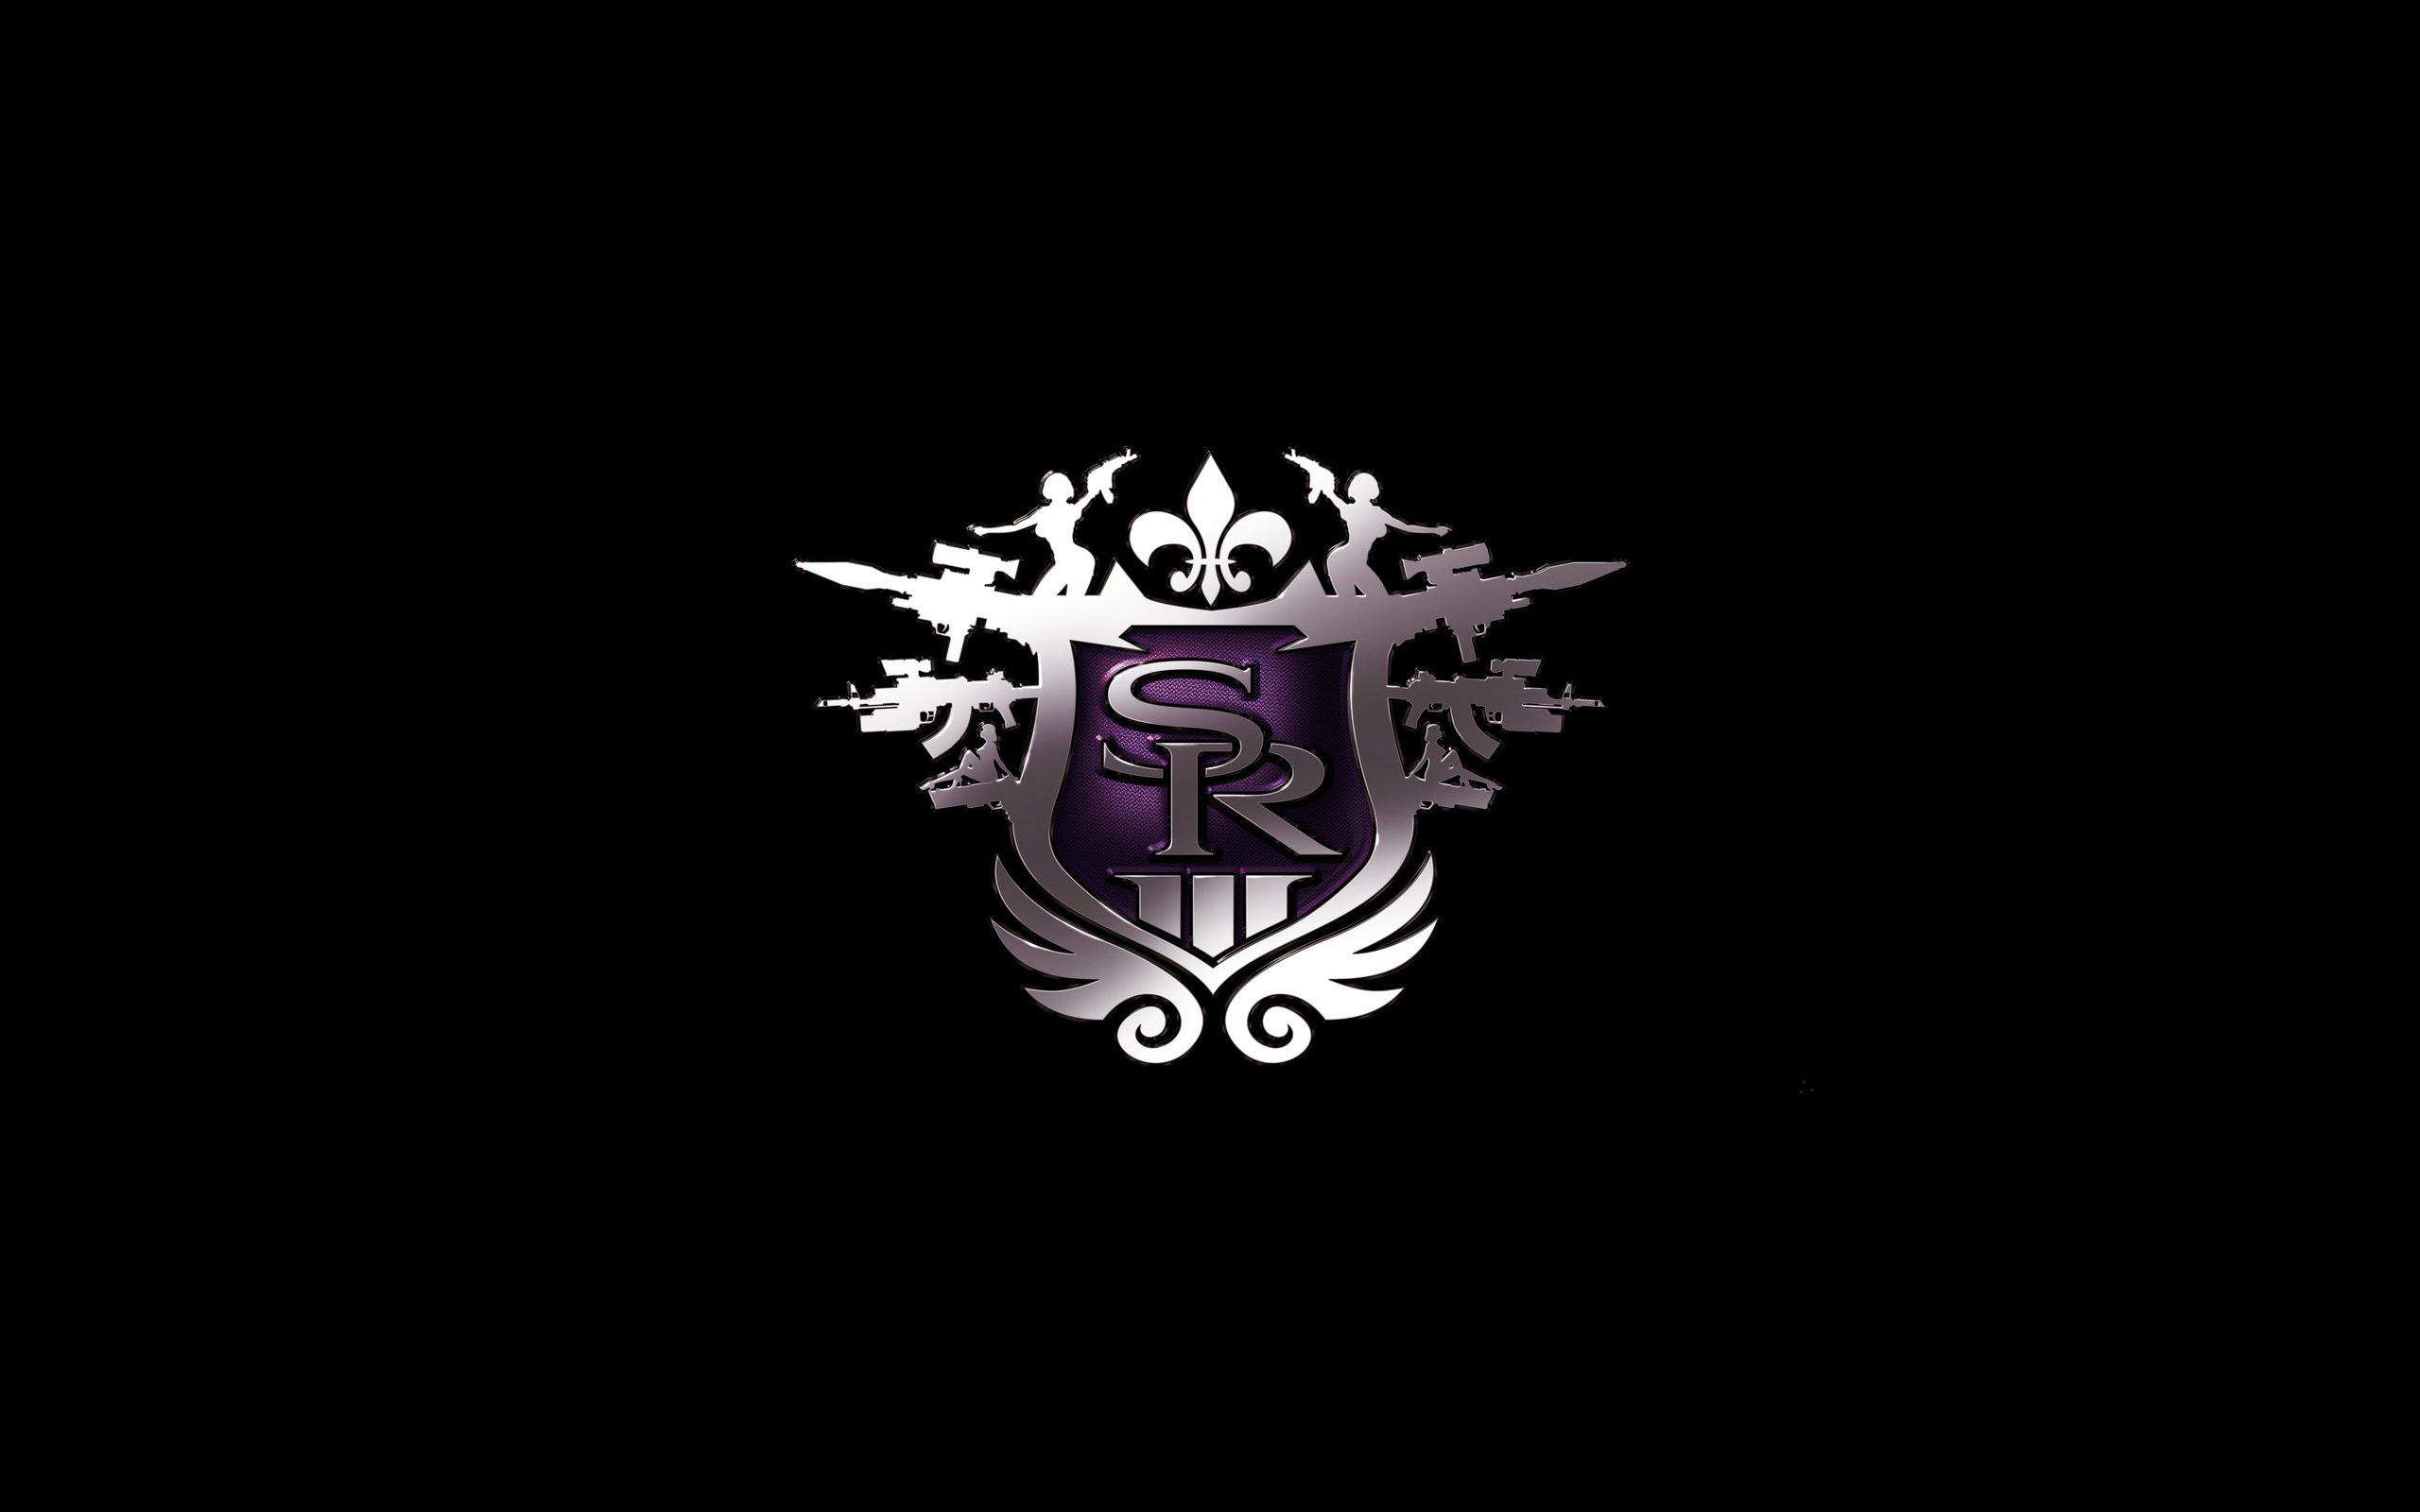 saints row logo wallpaper 2560x1600 27826